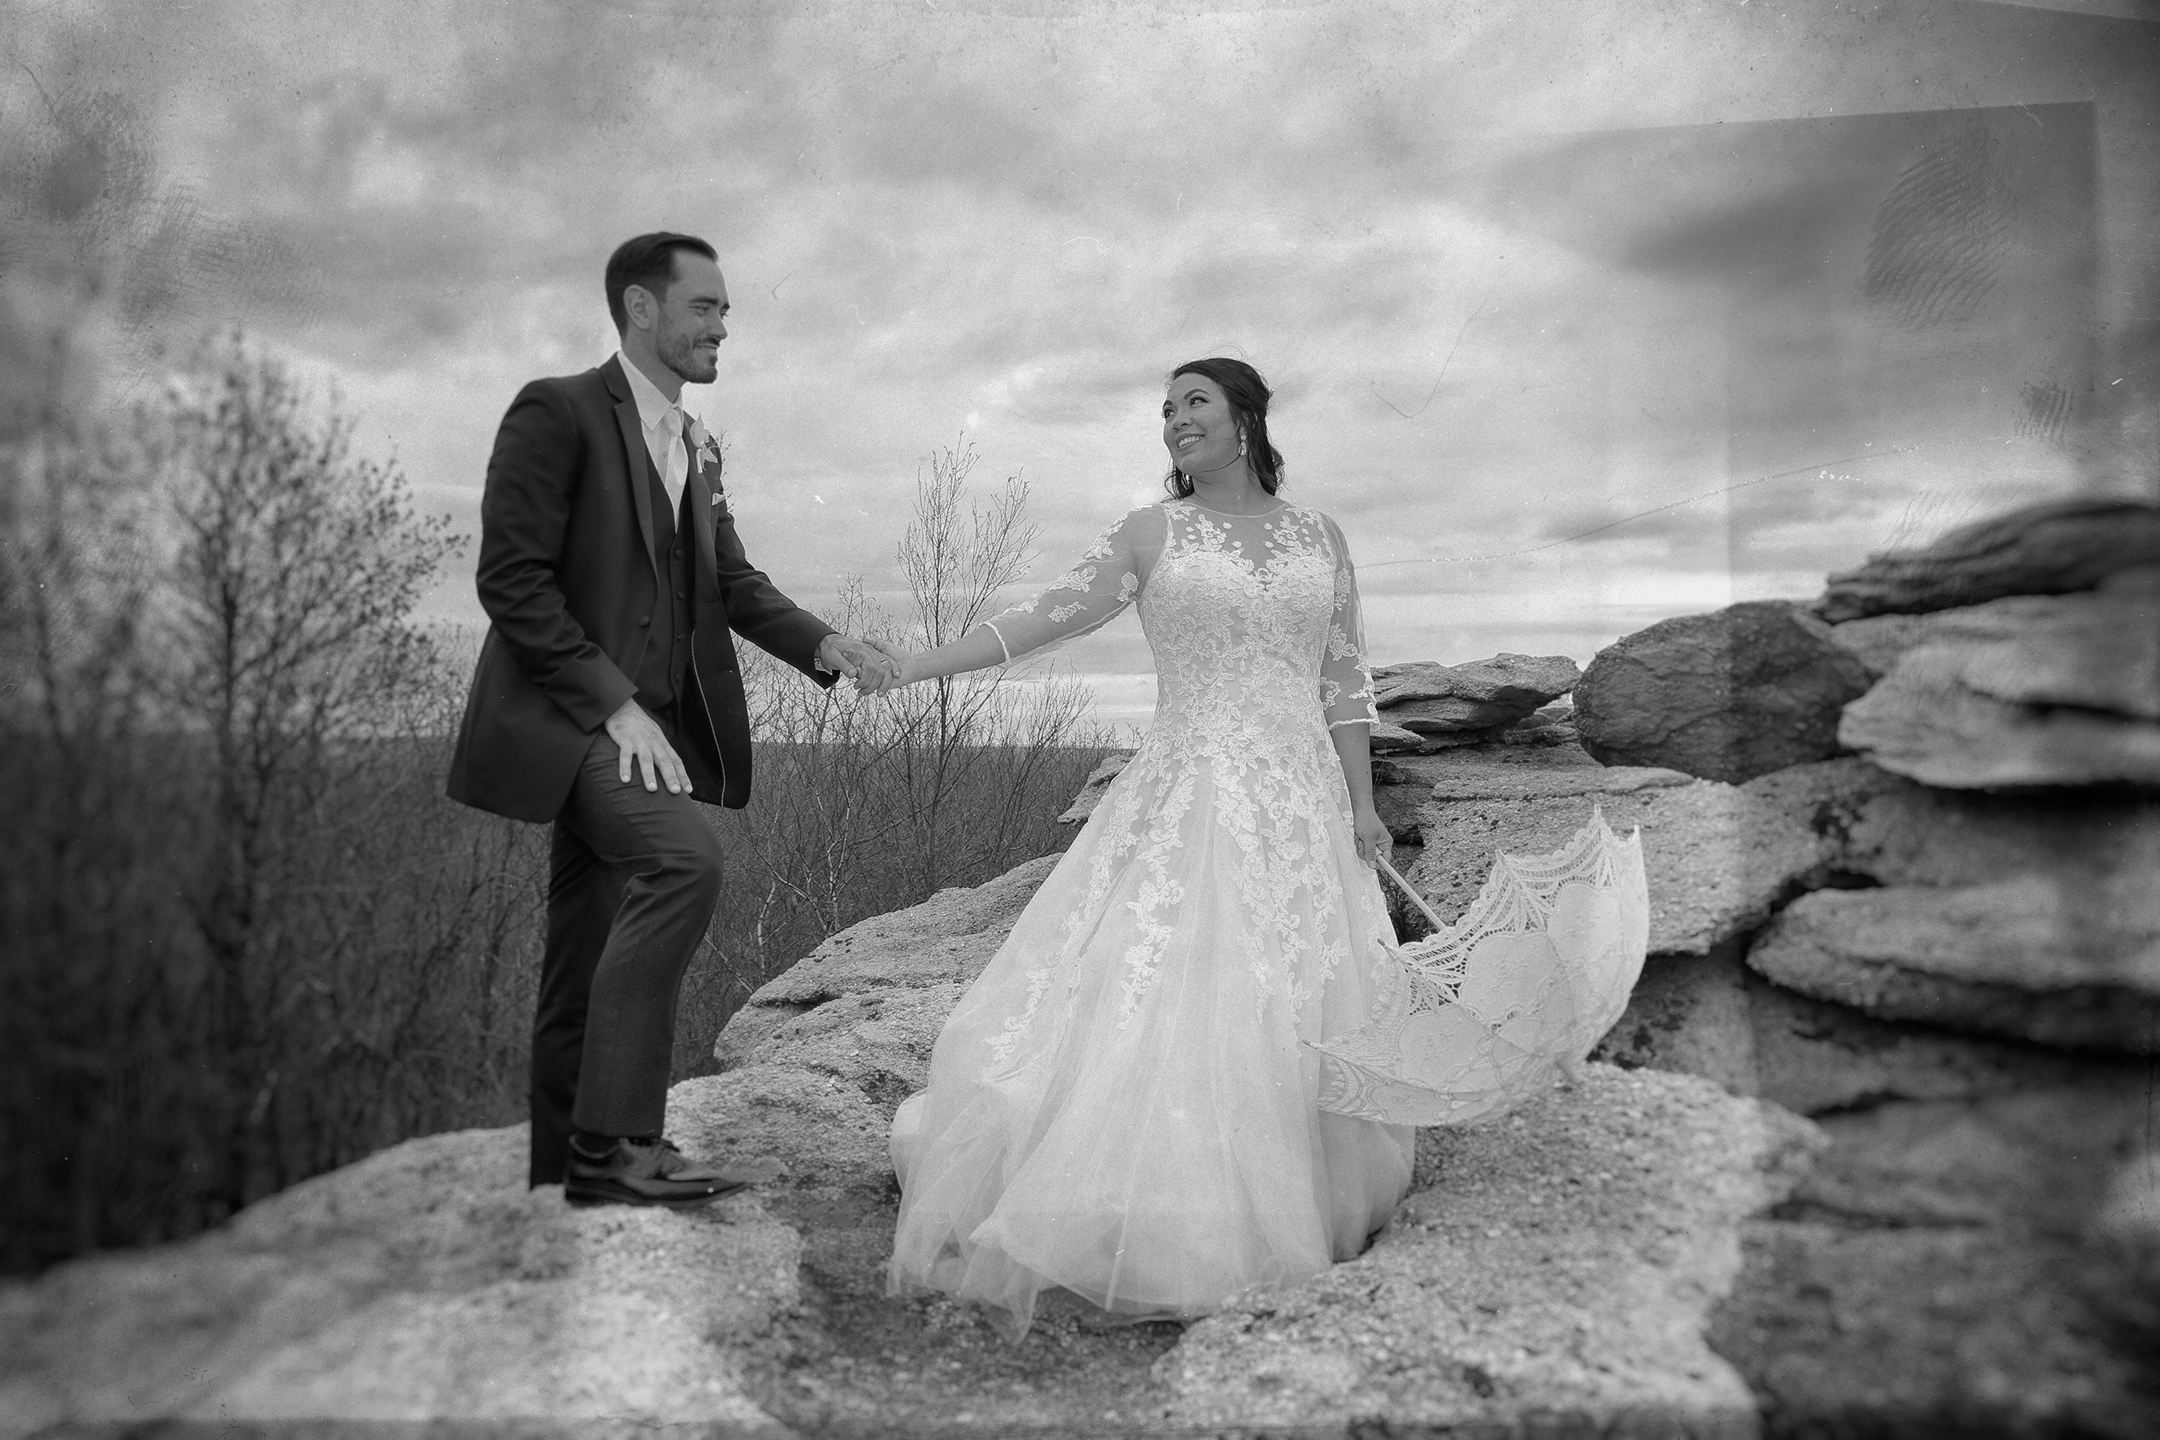 Autumn & Greg – Hazleton Township, PA